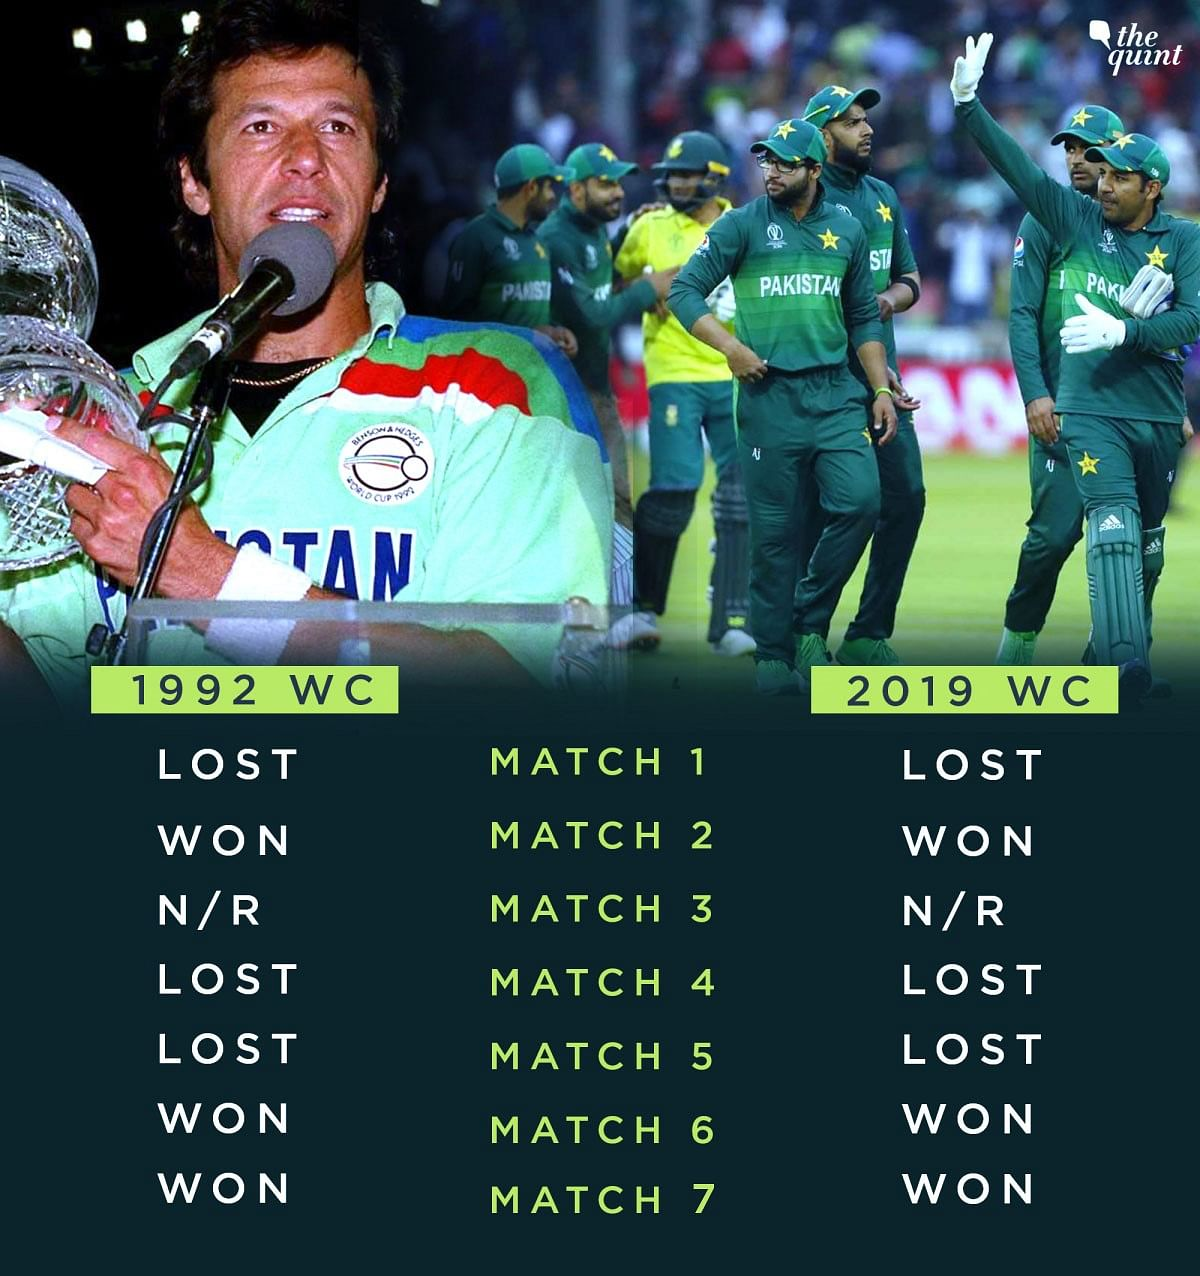 Pakistan's 2019 World Cup campaign has stark similarities to that of 1992.